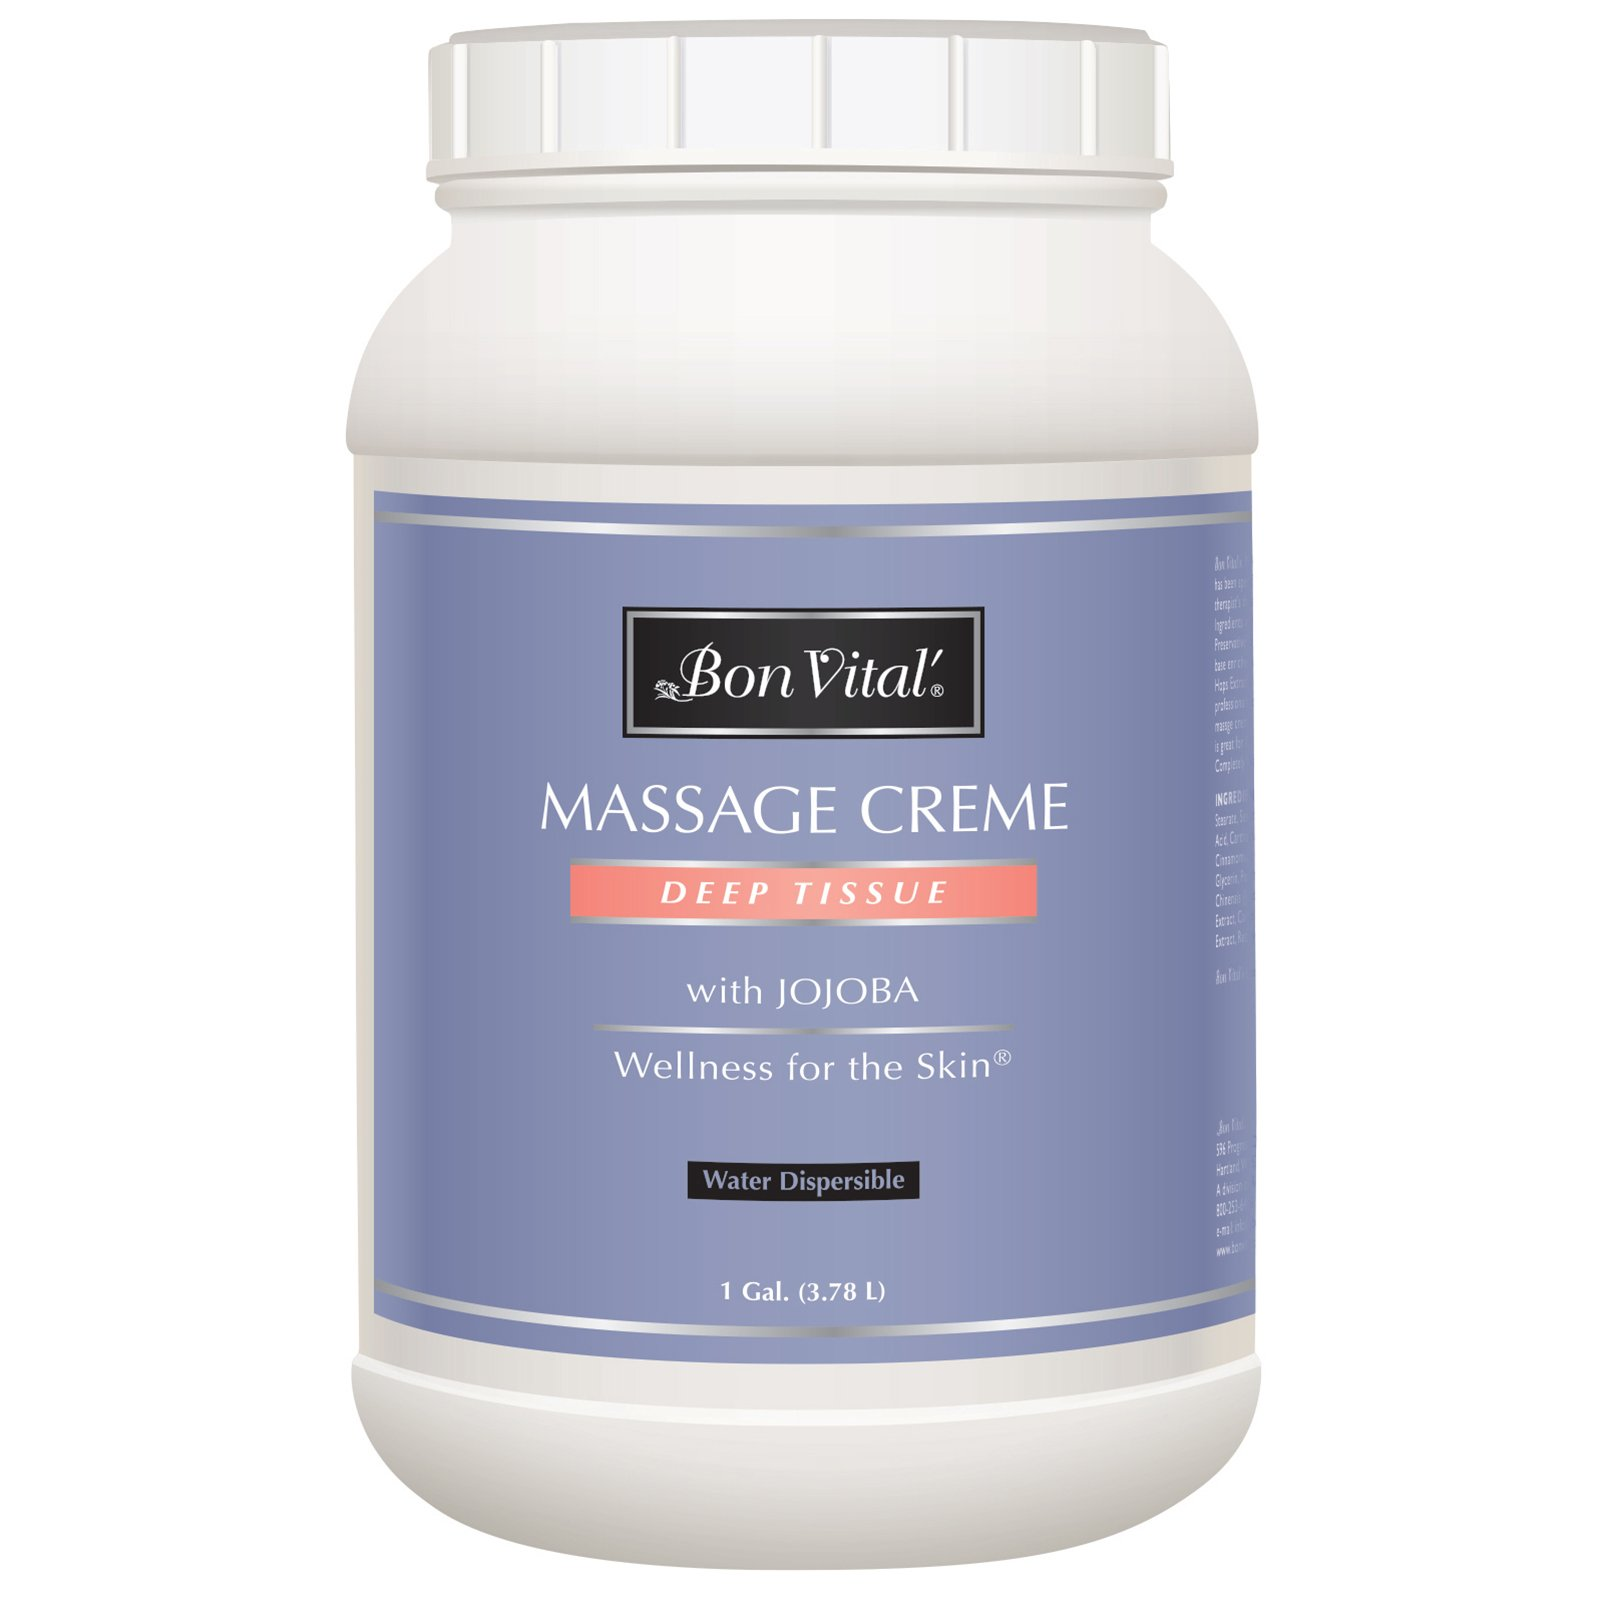 Bon Vital' Deep Tissue Massage Crème, Professional Massage Therapy Cream for Muscle Relaxation, Muscle Soreness, Injury Recovery, Deep Muscle Manipulation, Sports Massages, 1 Gallon Jar